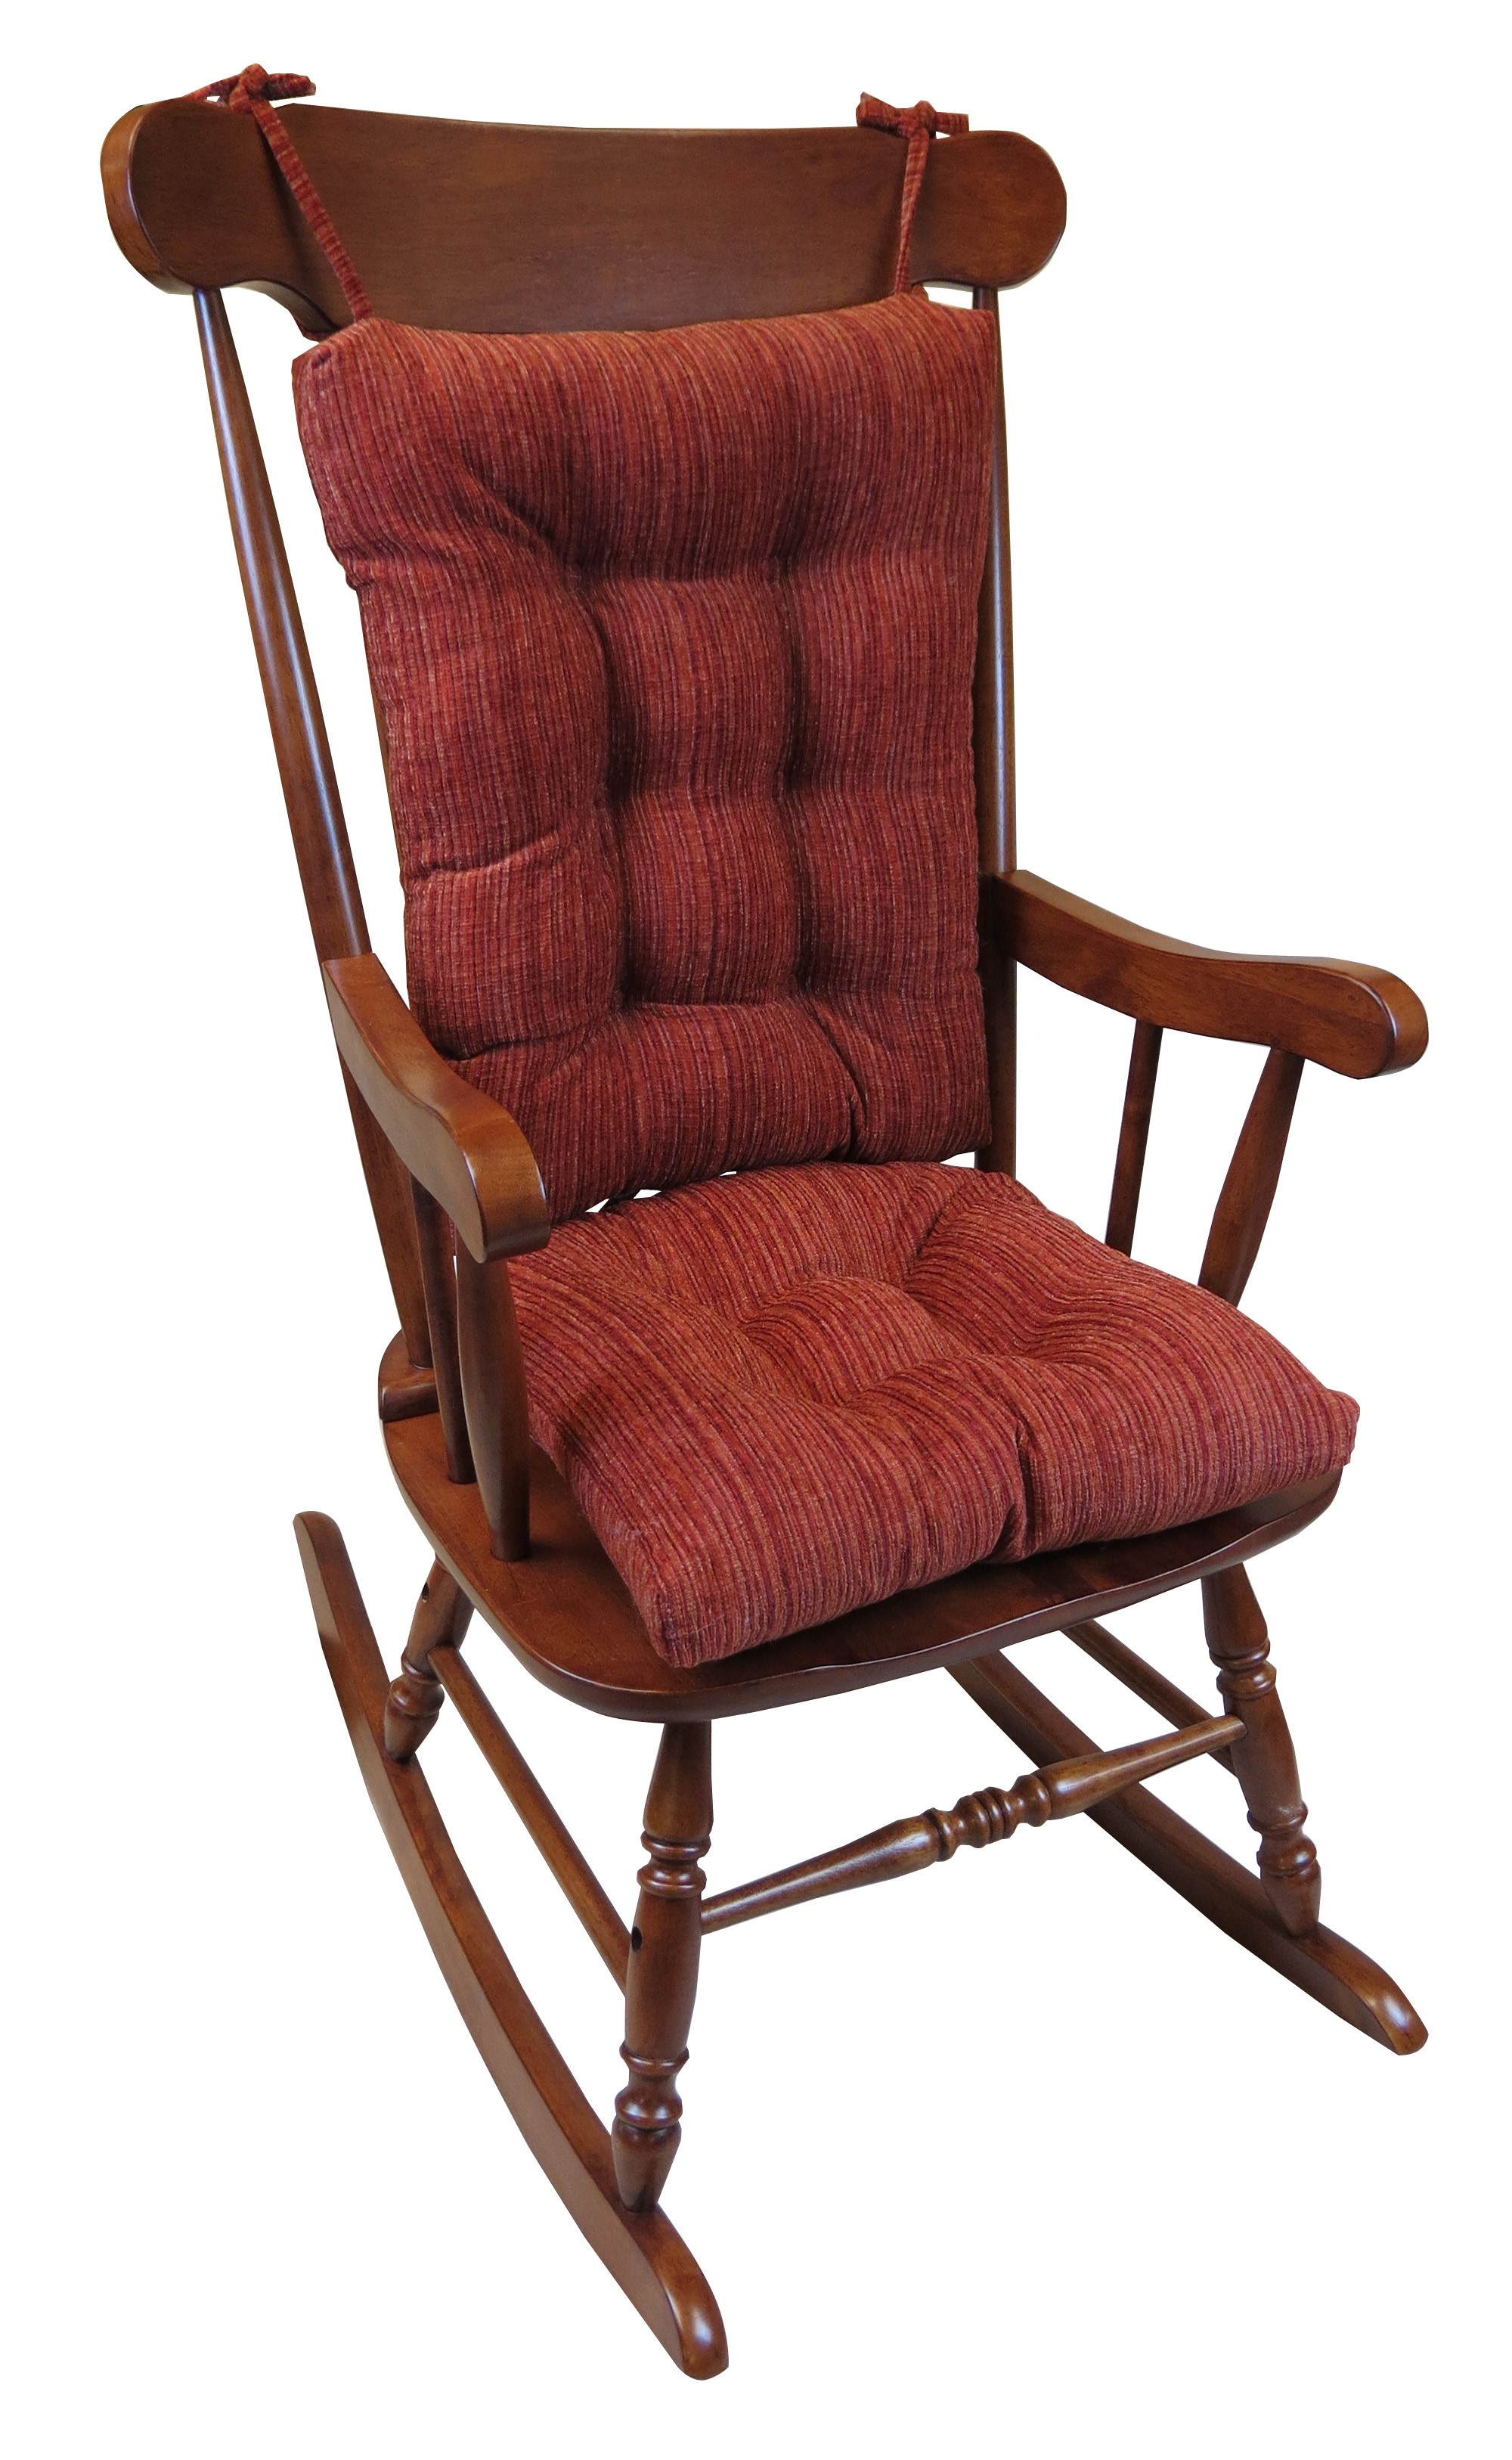 Rocking Chair With Cushions The Gripper Large Universal Rocking Chair Cushion Crushed